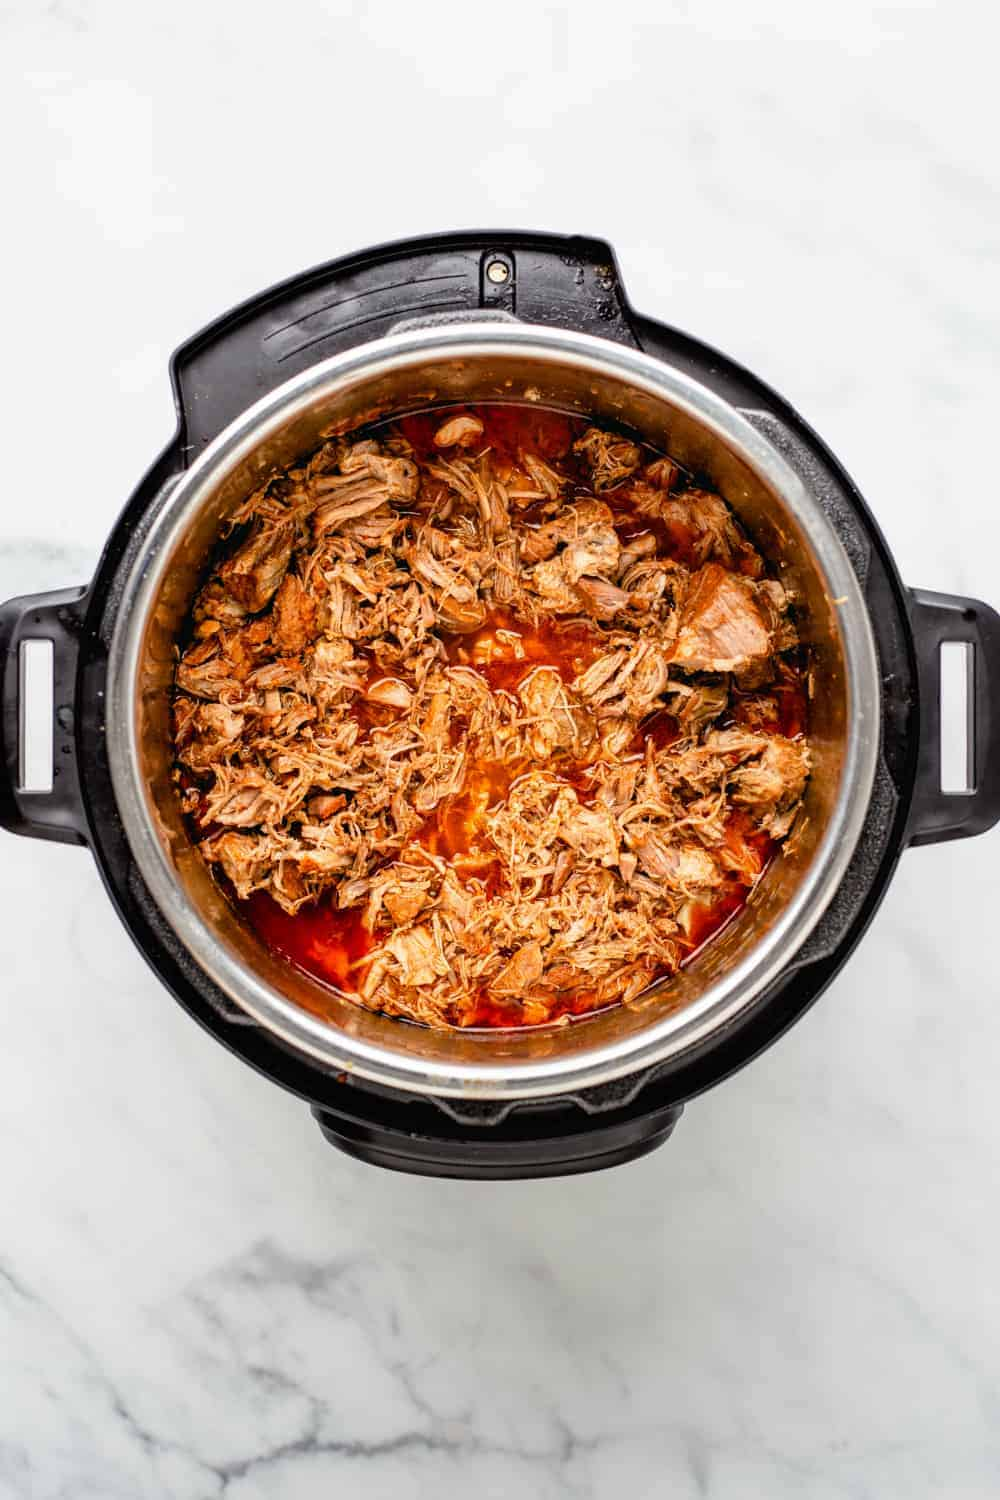 Instant Pot Pulled Pork is as fast and easy as it is delicious.